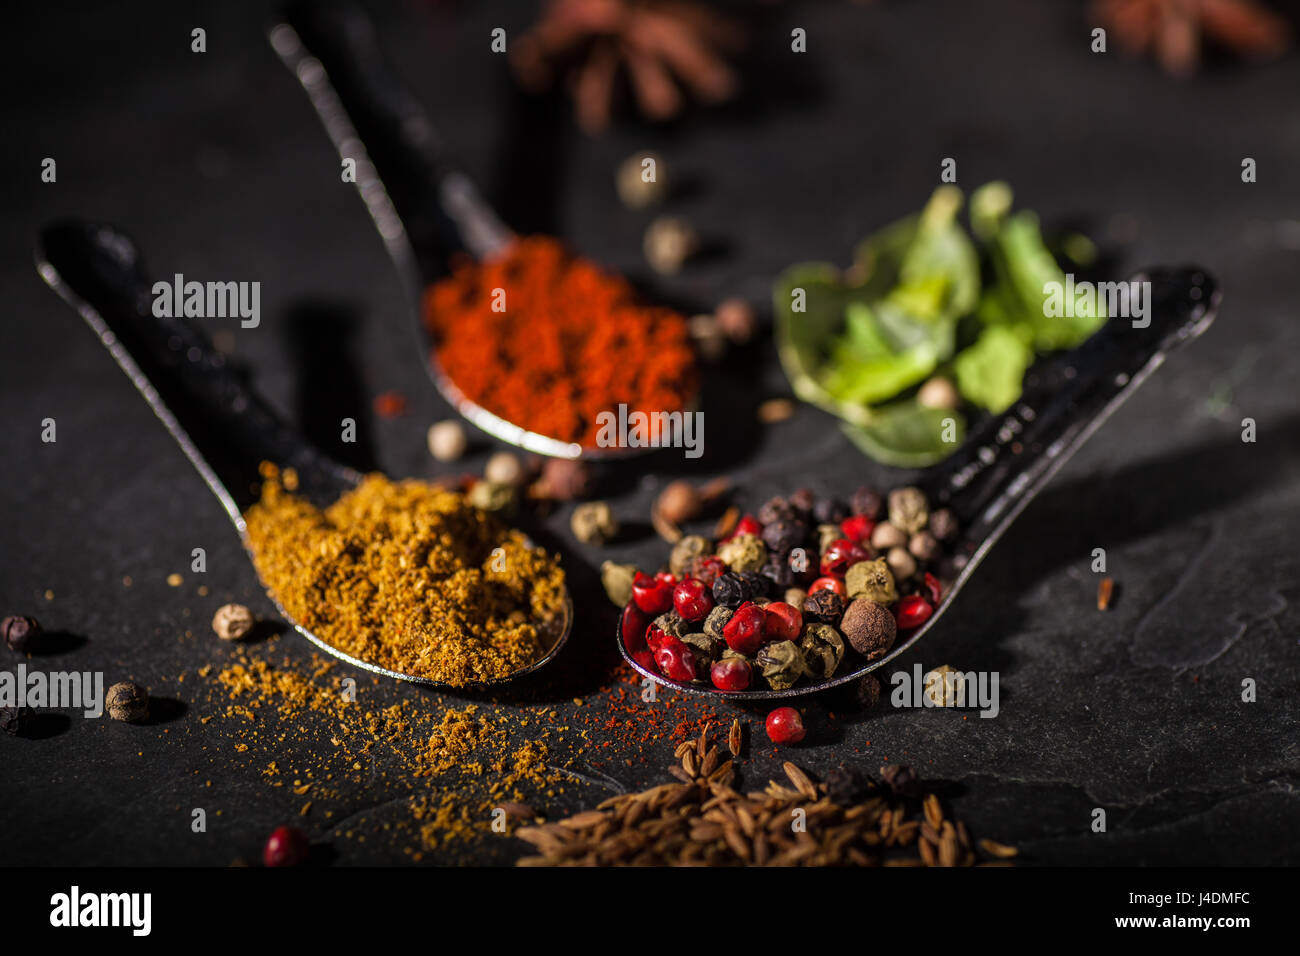 Spice selection on grey slate worktop - Stock Image